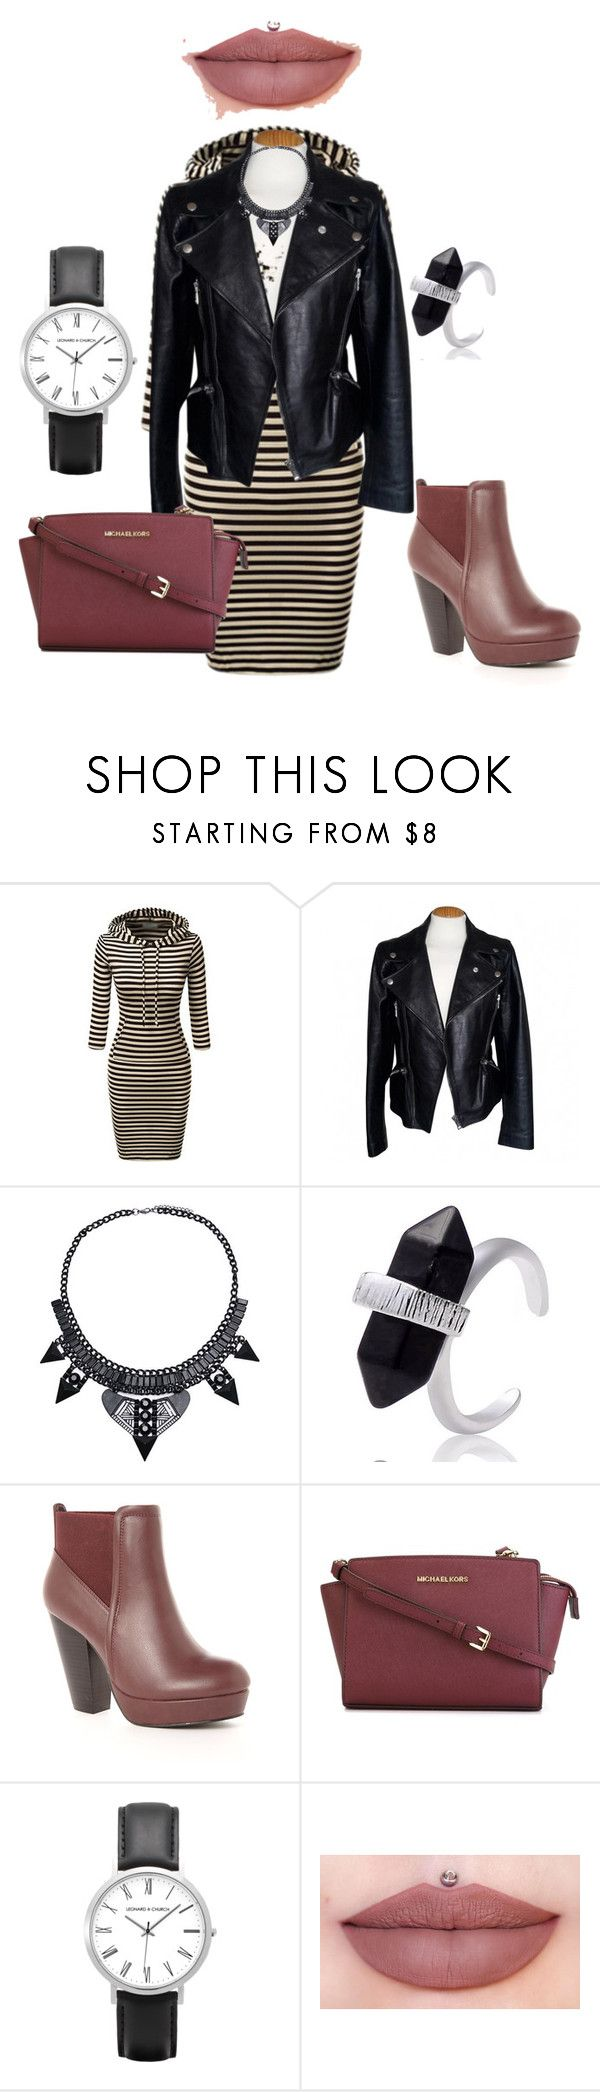 """BadGal Plus Size"" by migalowa on Polyvore featuring Alexander McQueen, Wild Diva, MICHAEL Michael Kors, women's clothing, women's fashion, women, female, woman, misses and juniors"